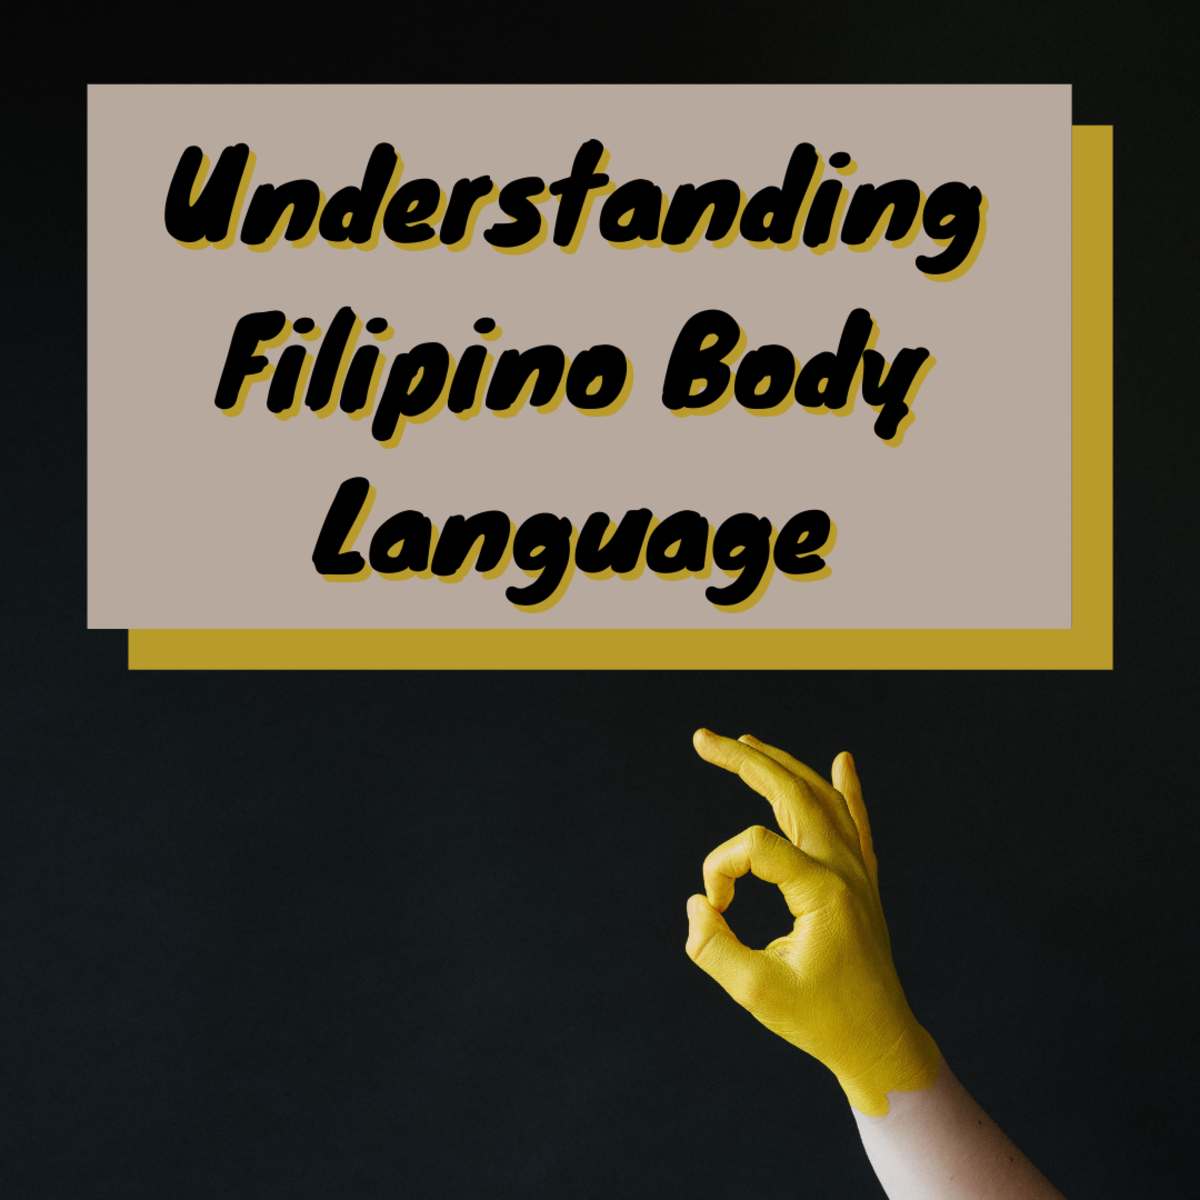 This article teaches you about Filipino body language, explaining 10 common gestures to help you understand Filipino culture better!